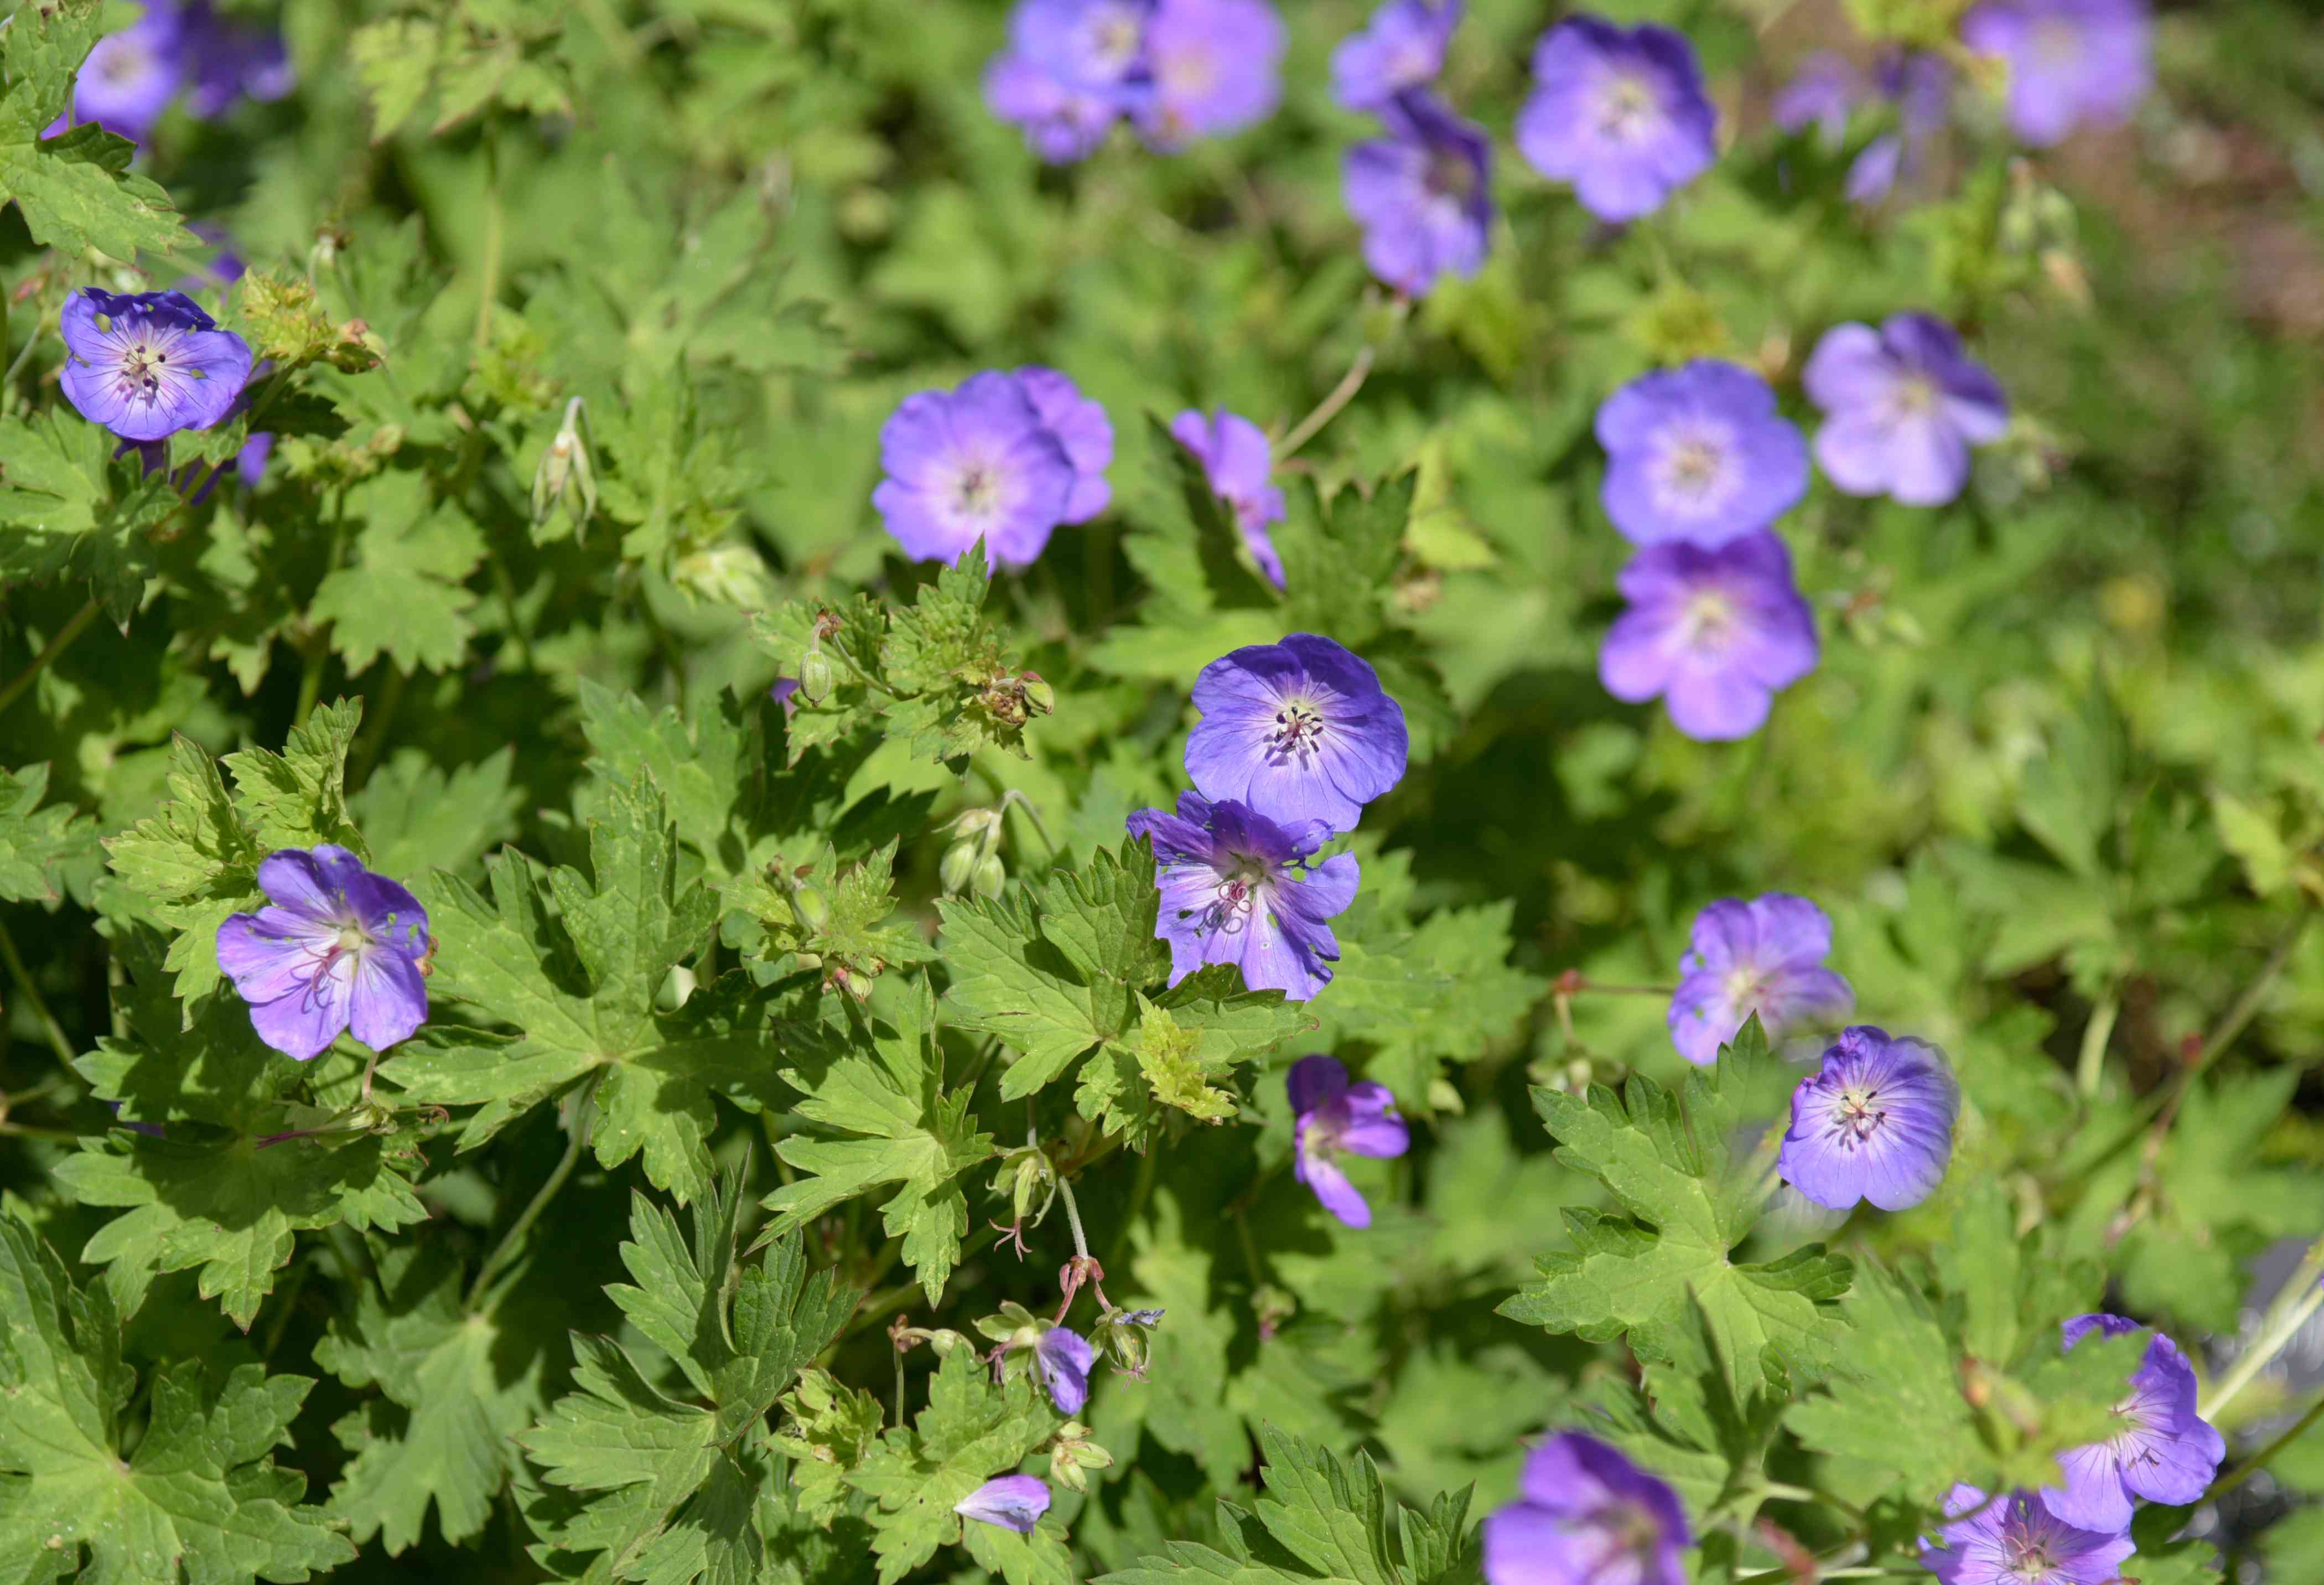 Hardy 'Rozanne' geranium plant with purple-blue flowers surrounded by leaves in sunlight